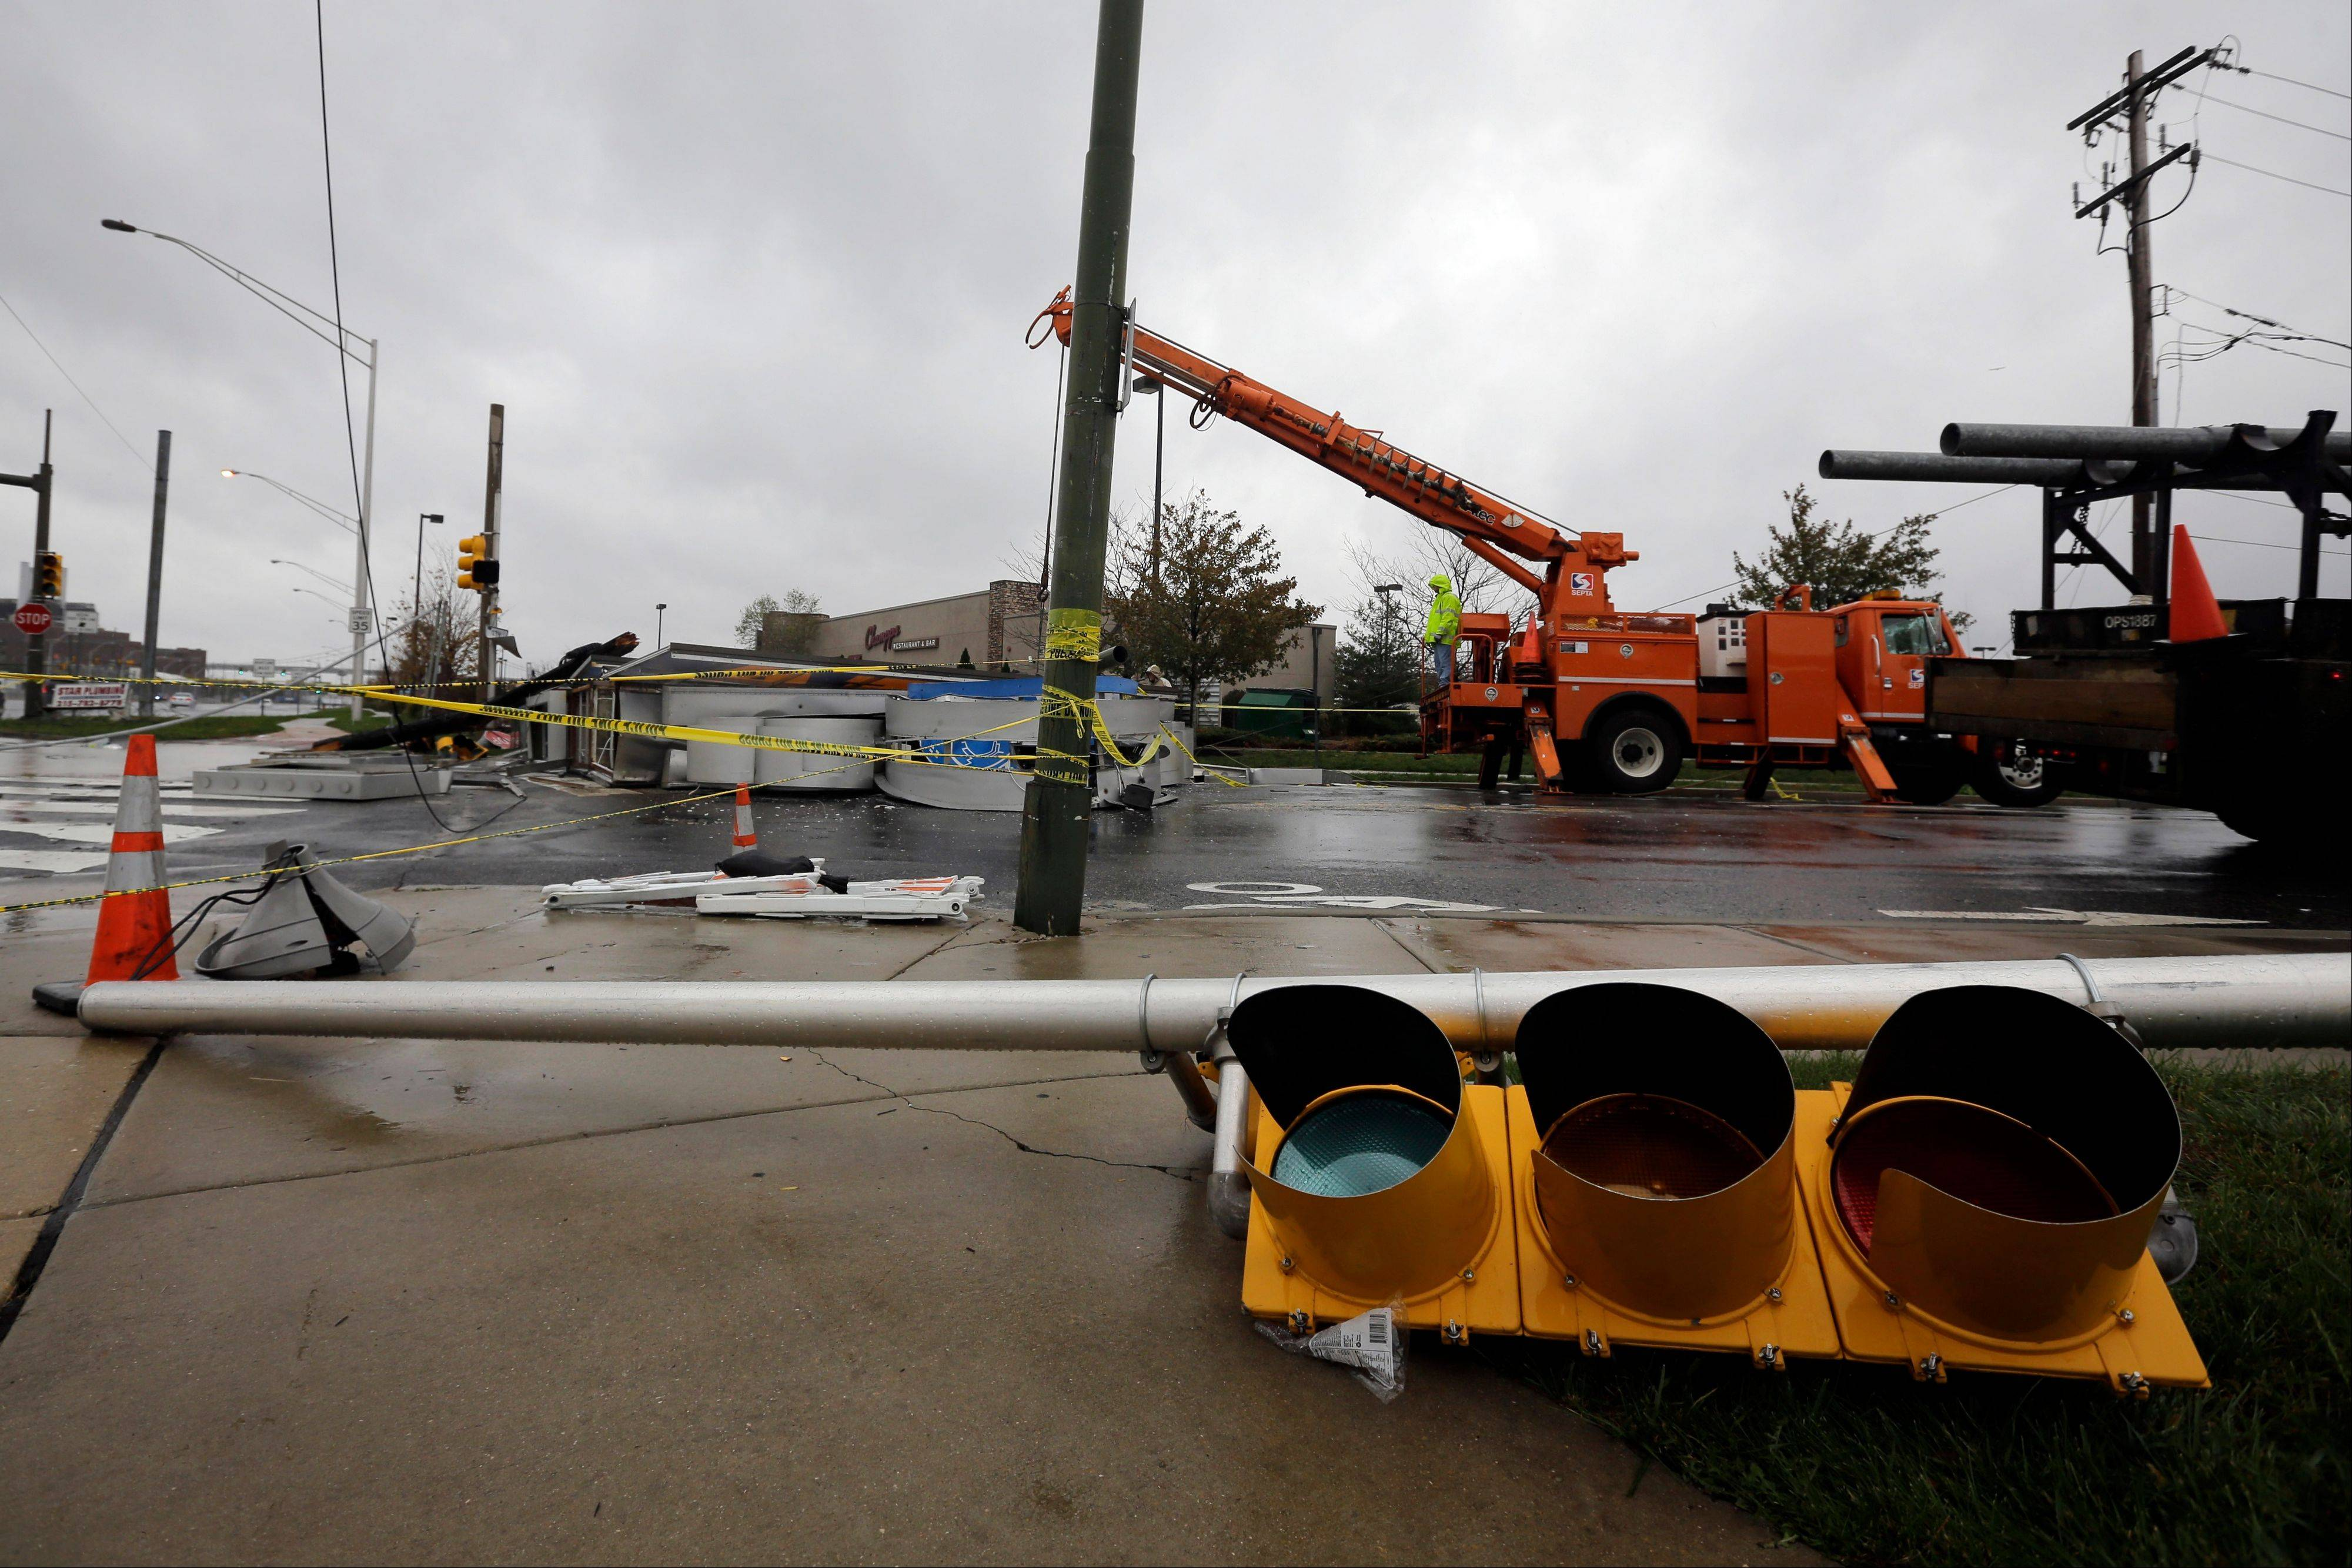 Crews work to remove a damaged sign in the wake of superstorm Sandy, Tuesday, Oct. 30, 2012, in Philadelphia.